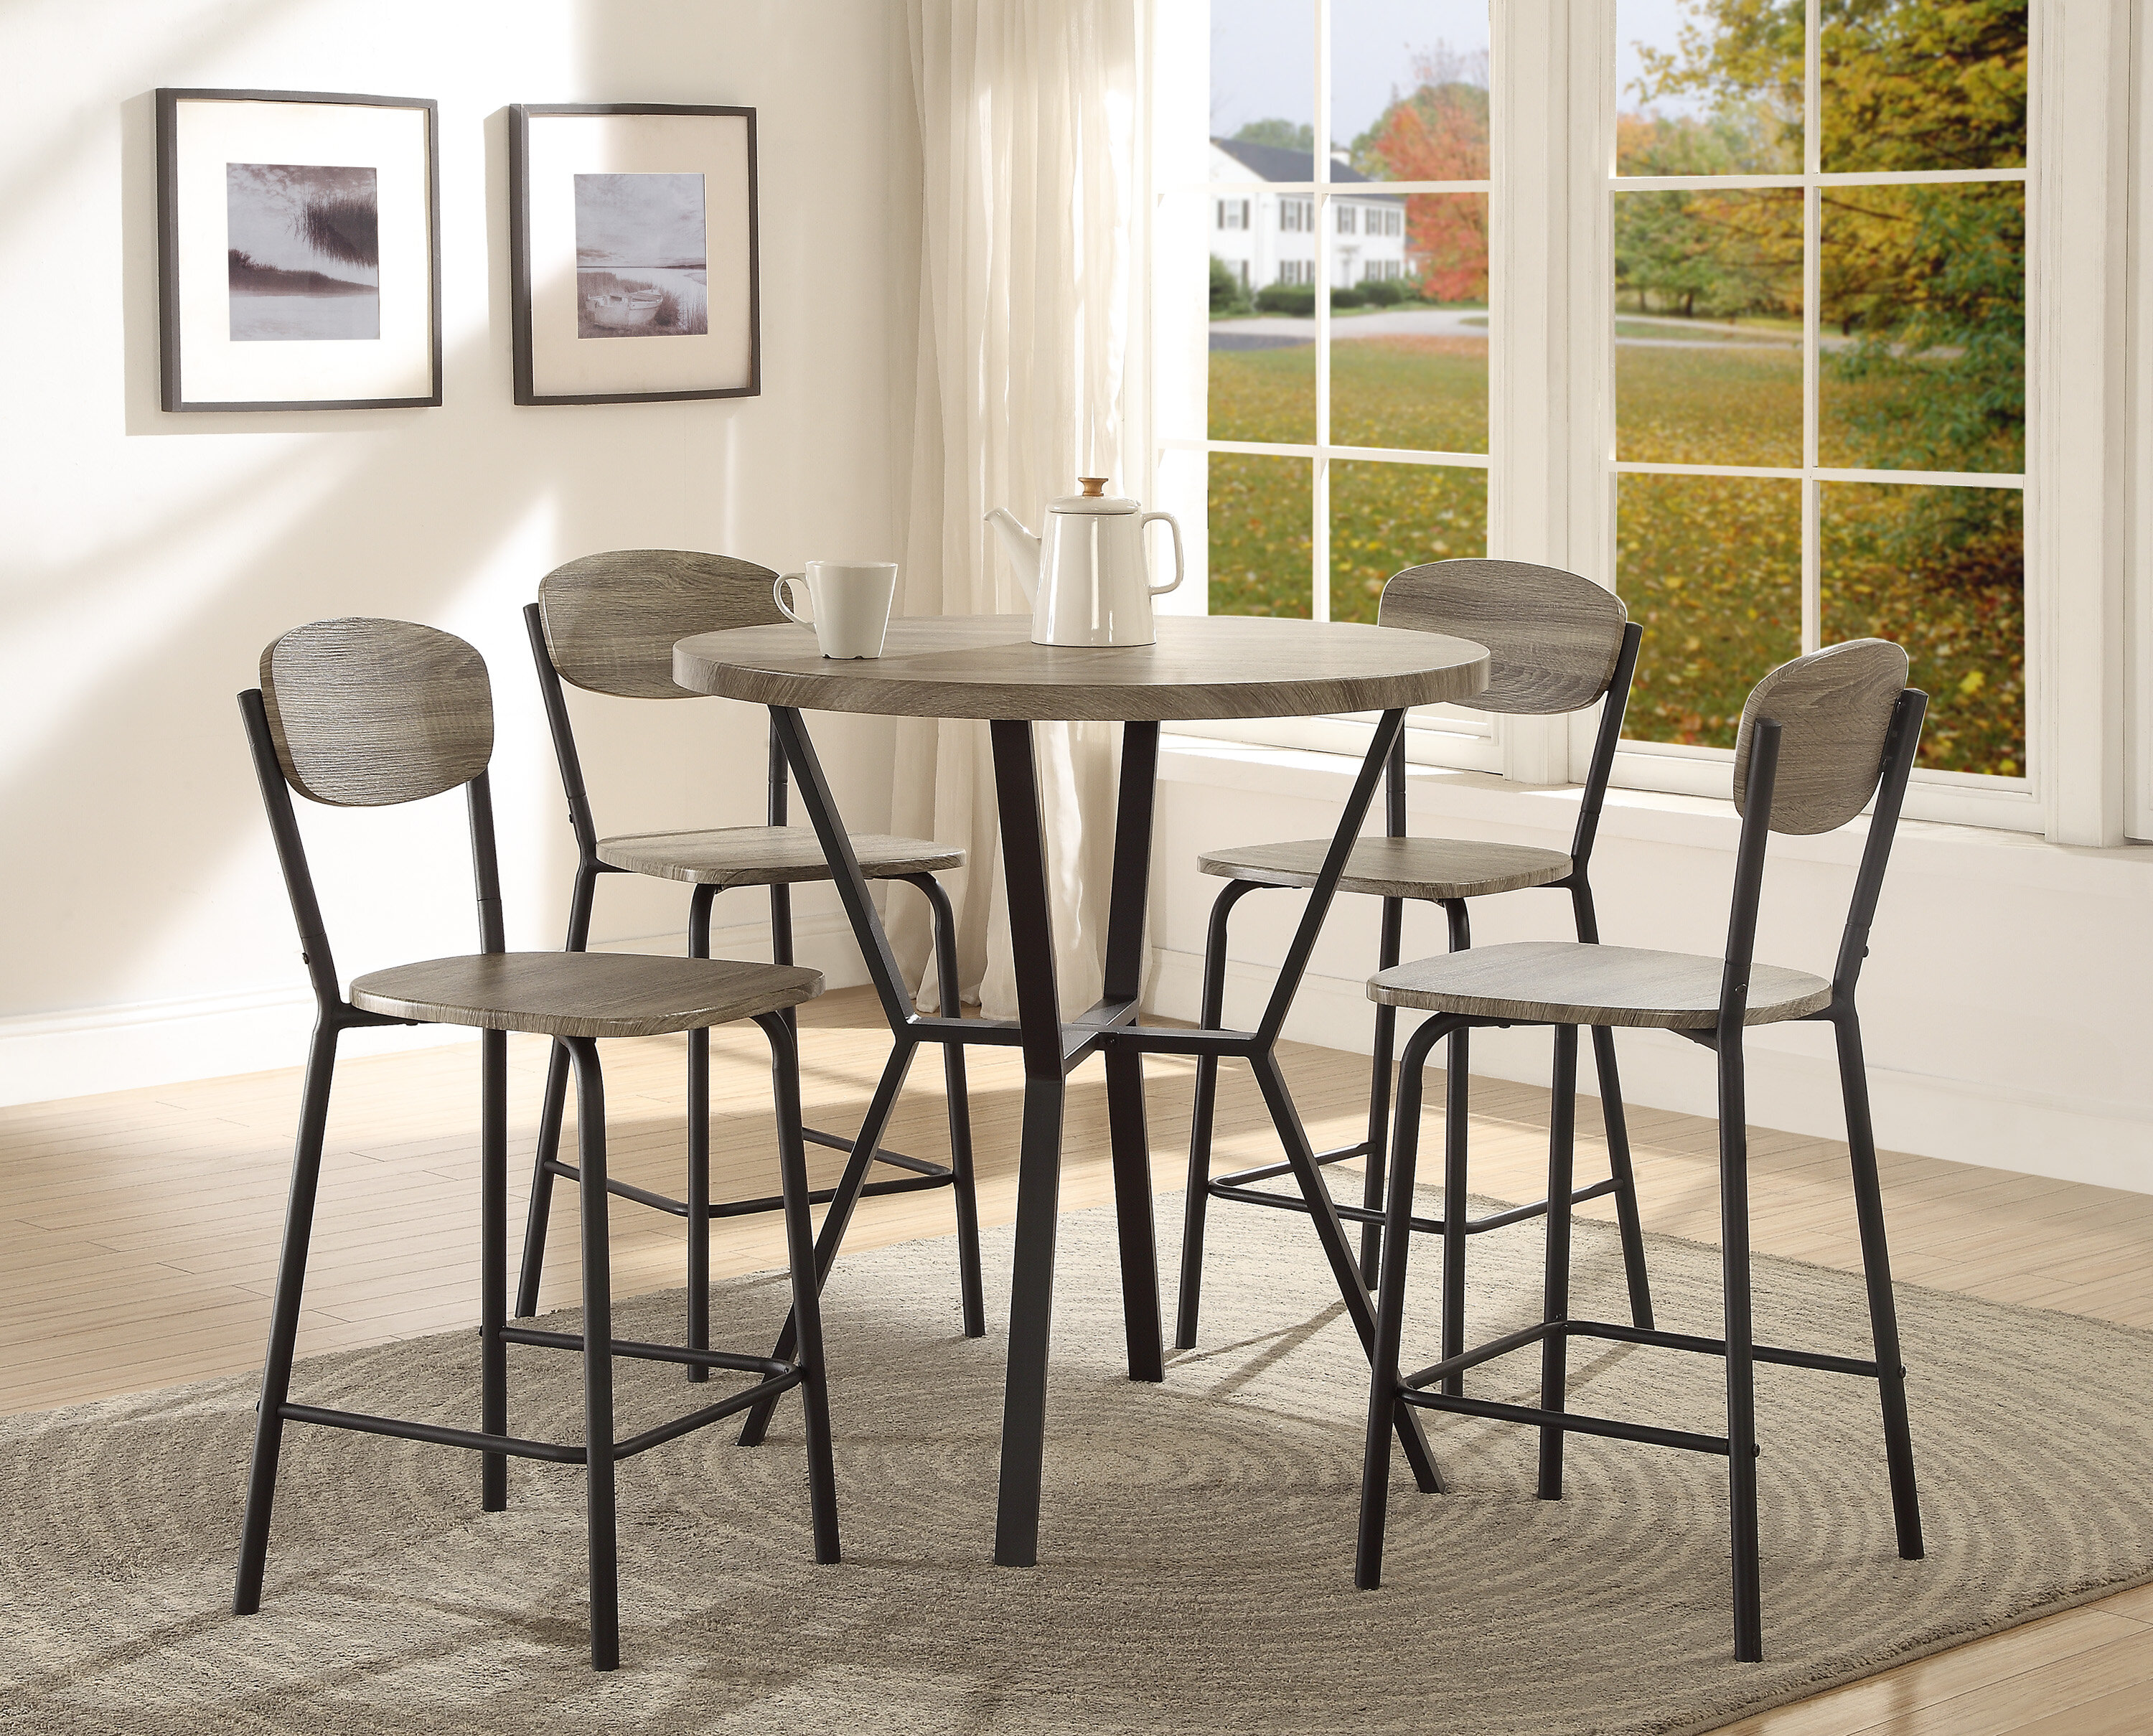 crown mark blake 5 piece counter height dining set & reviews | wayfair